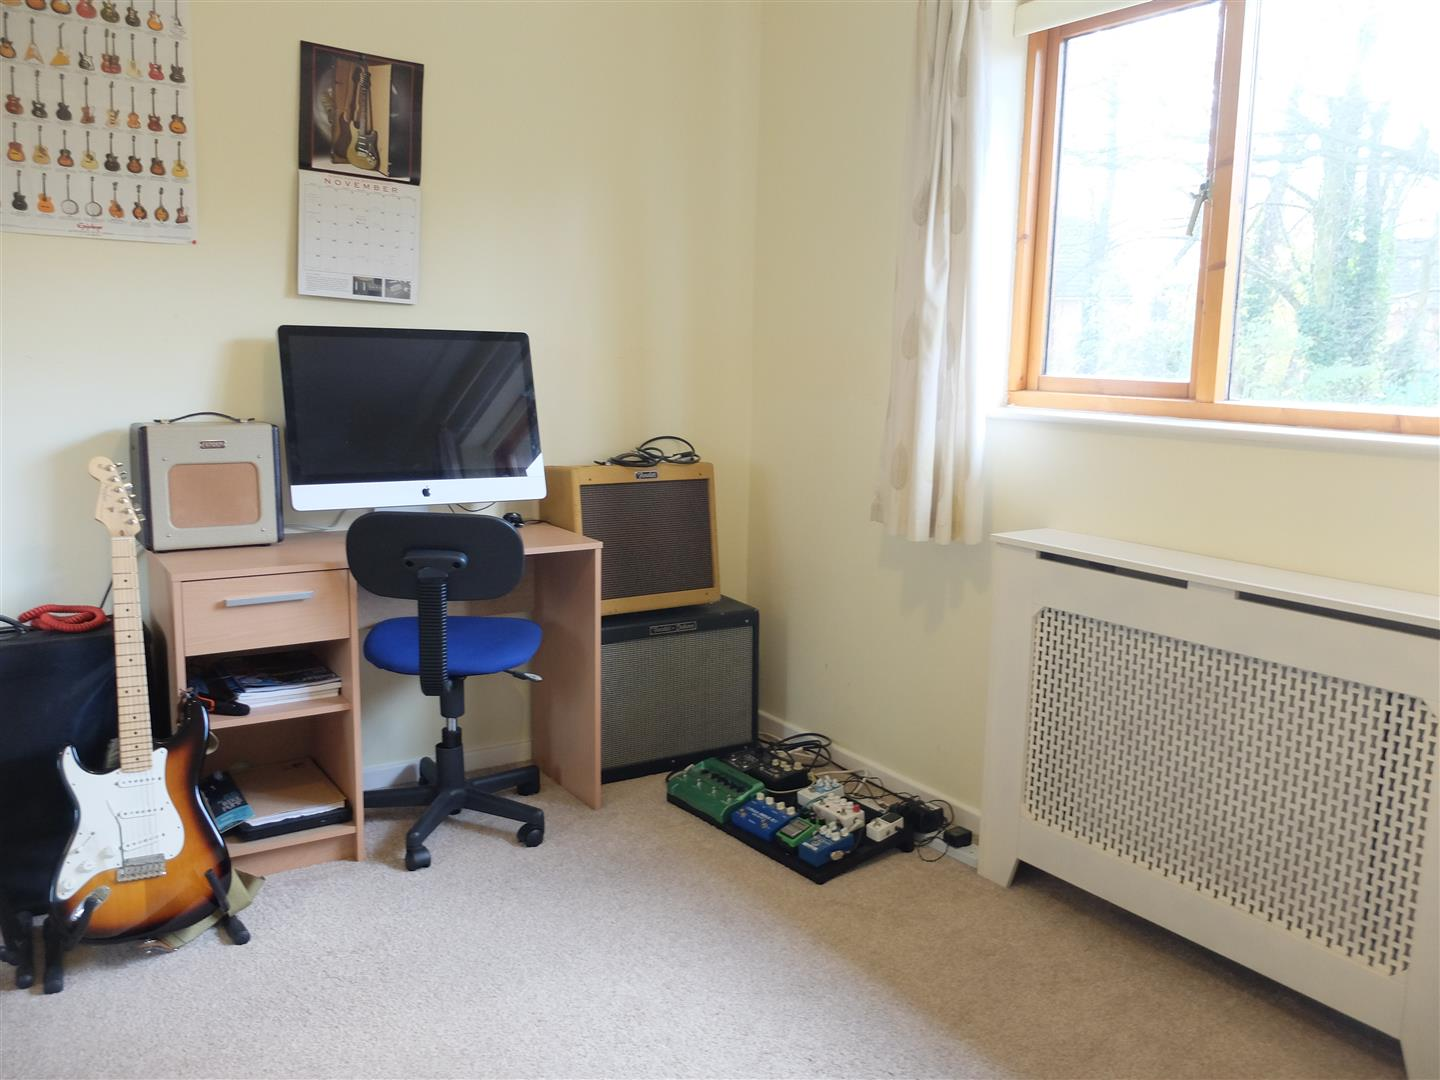 2 Bedrooms House - Semi-Detached For Sale 11 Maple Grove Carlisle 125,000